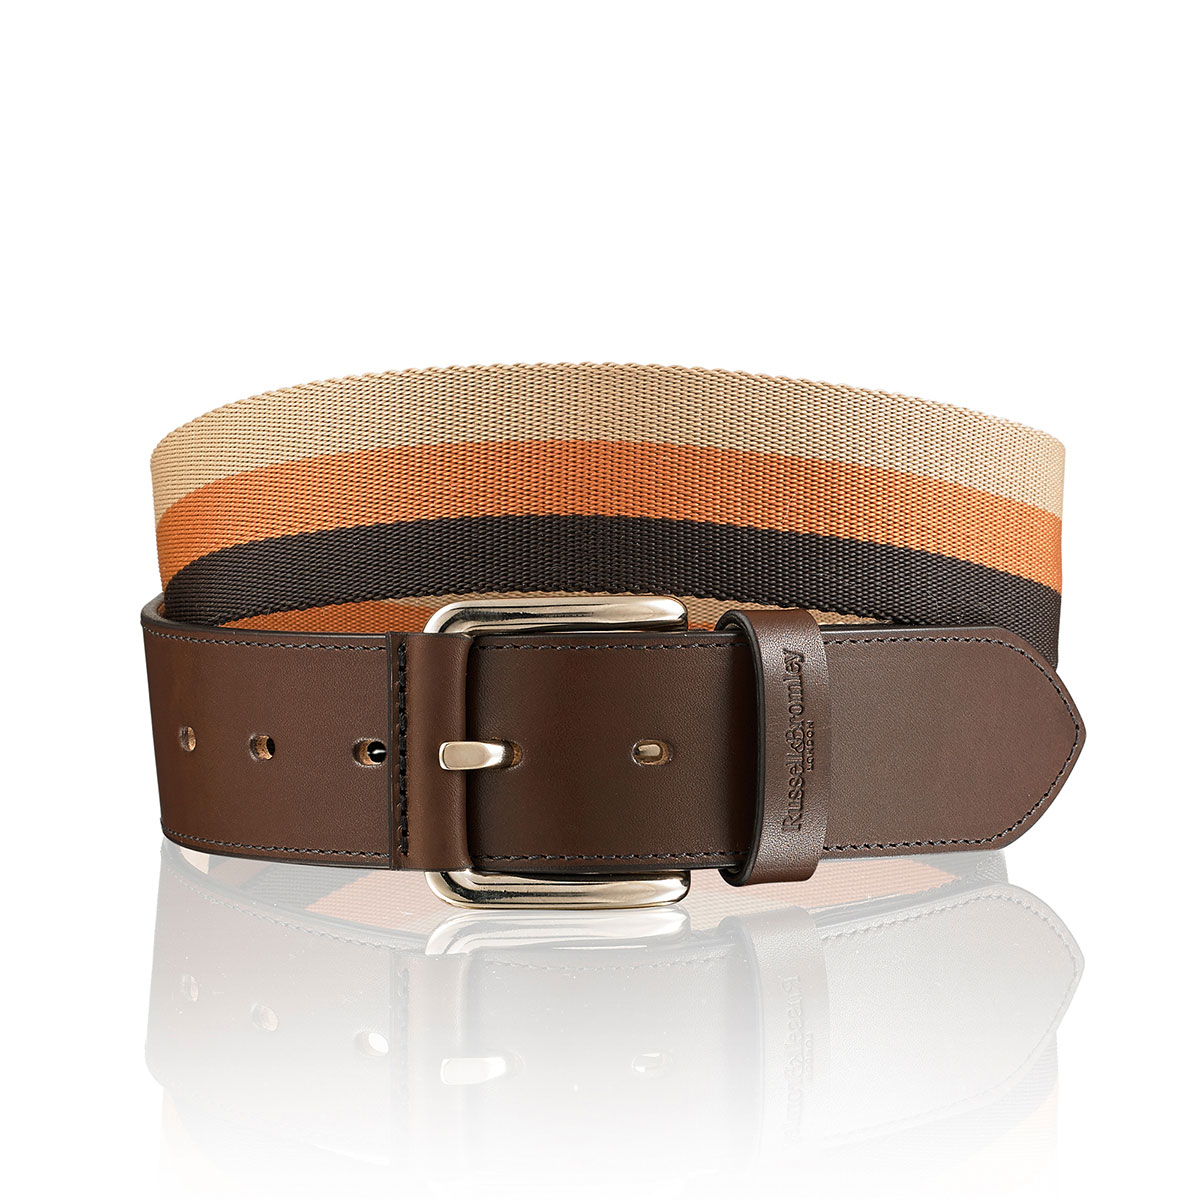 Russell And Bromley FAB BELT Casual Belt